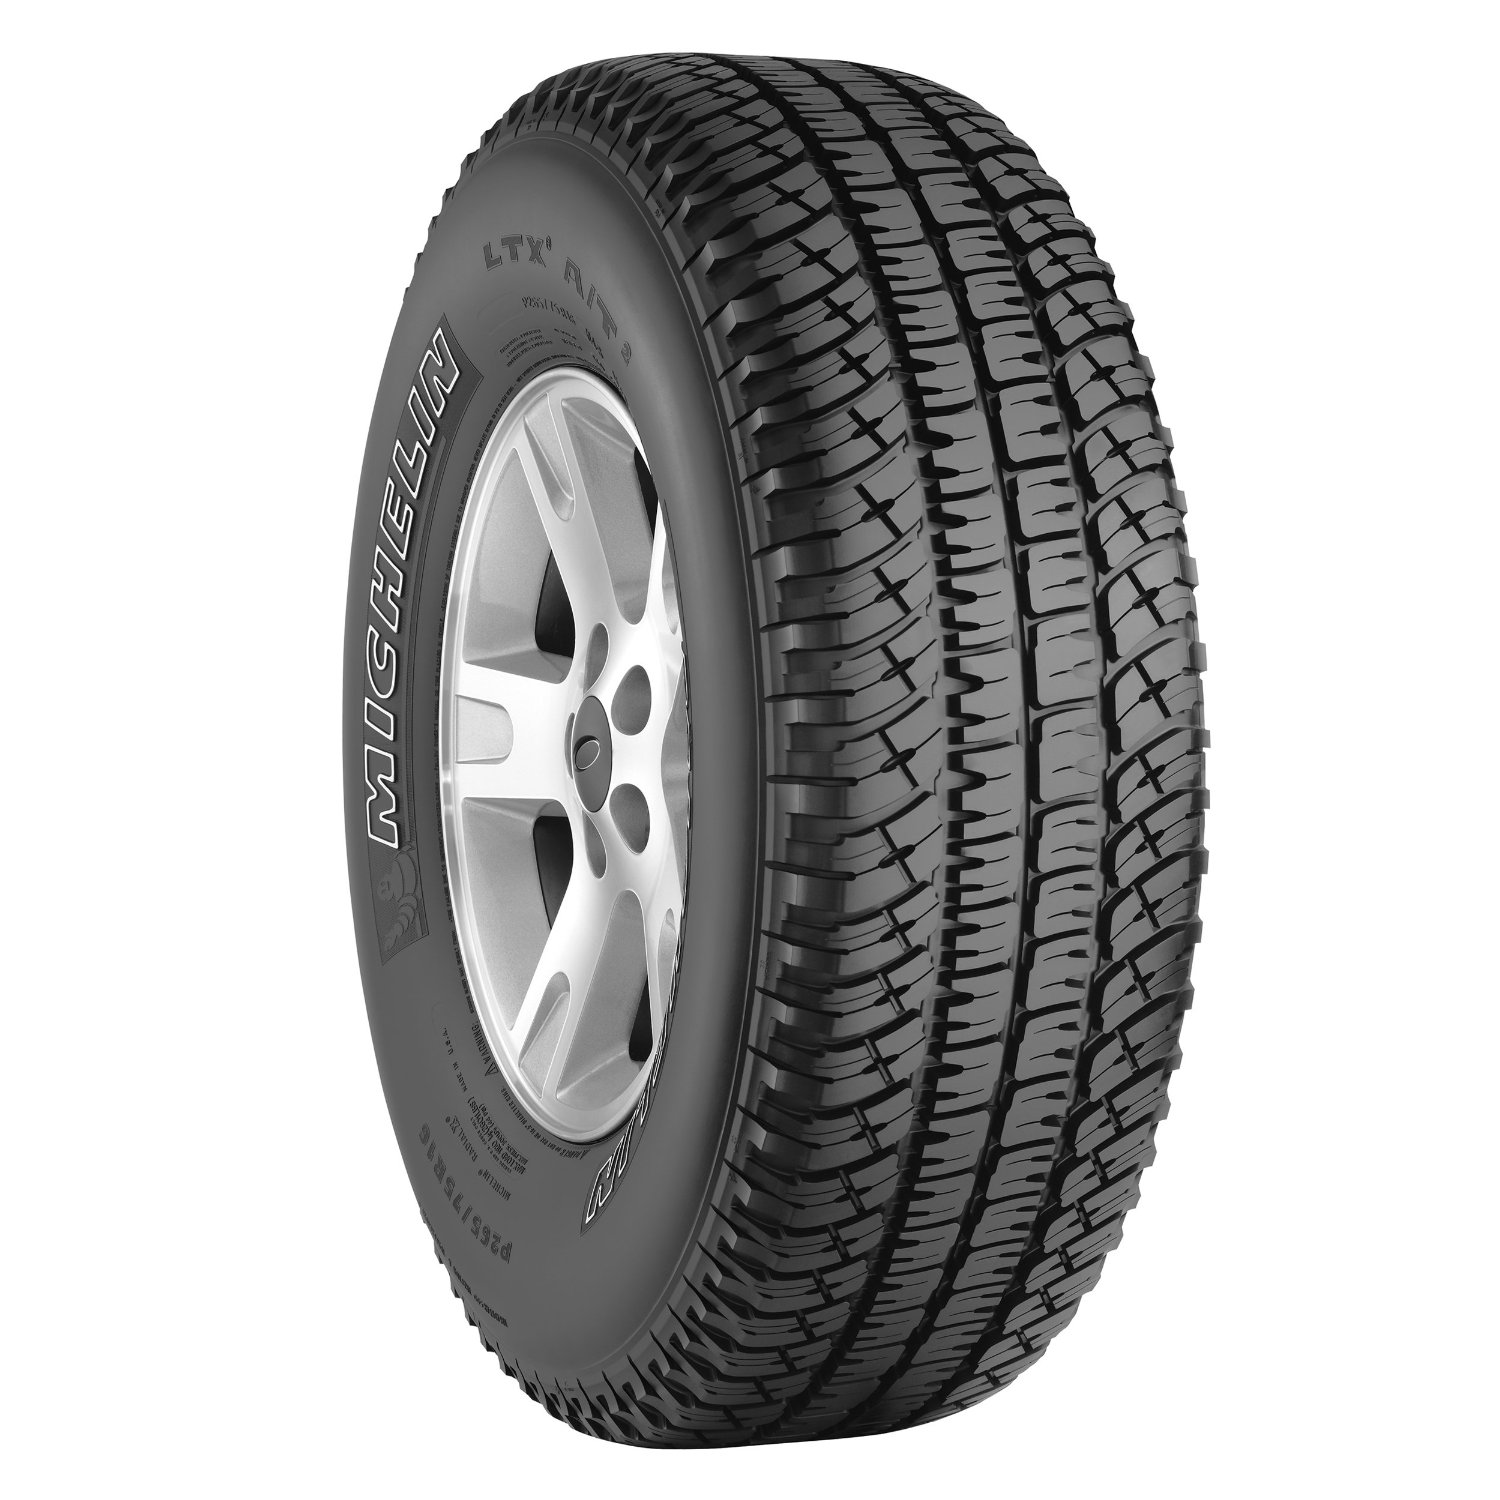 Michelin LTX A/T2 All-Season Radial Tire